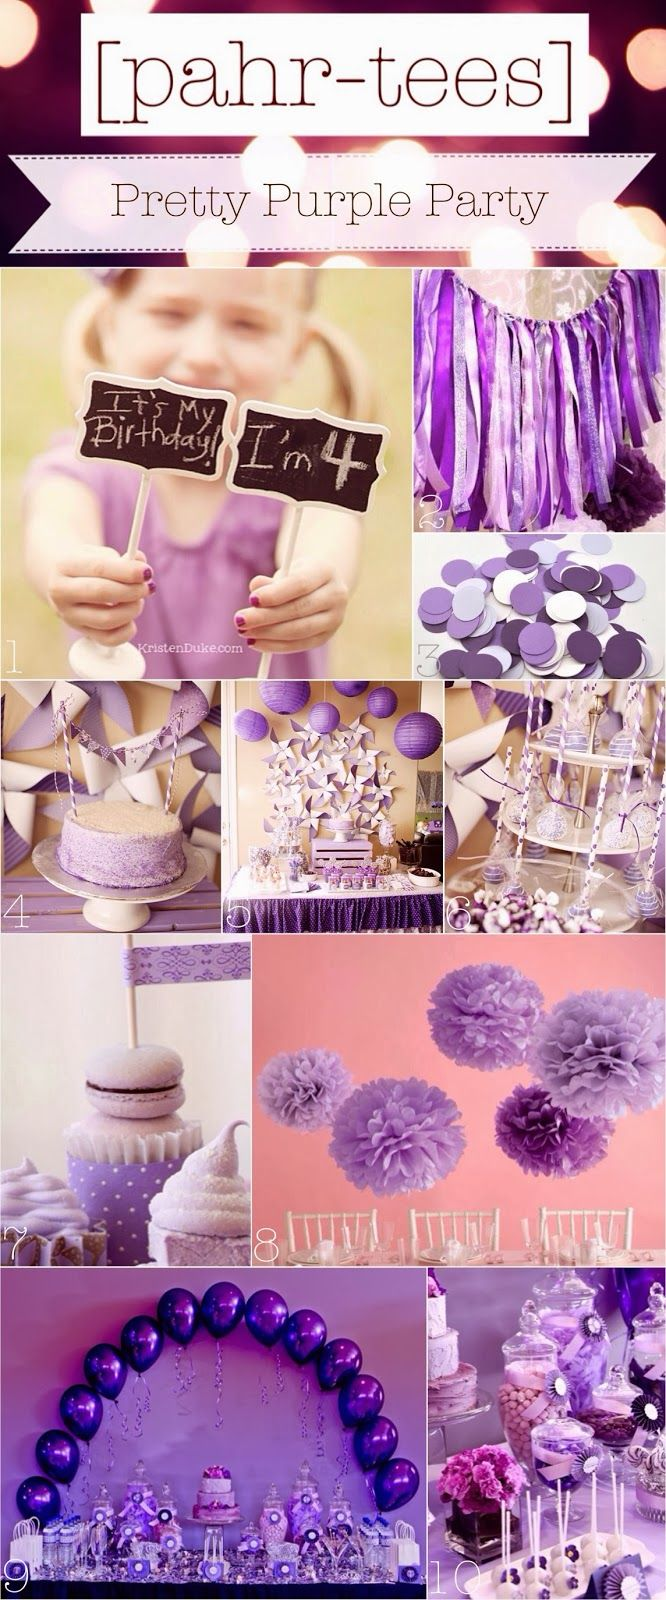 12 best Colors images on Pinterest | Weddings, Events and Centerpieces